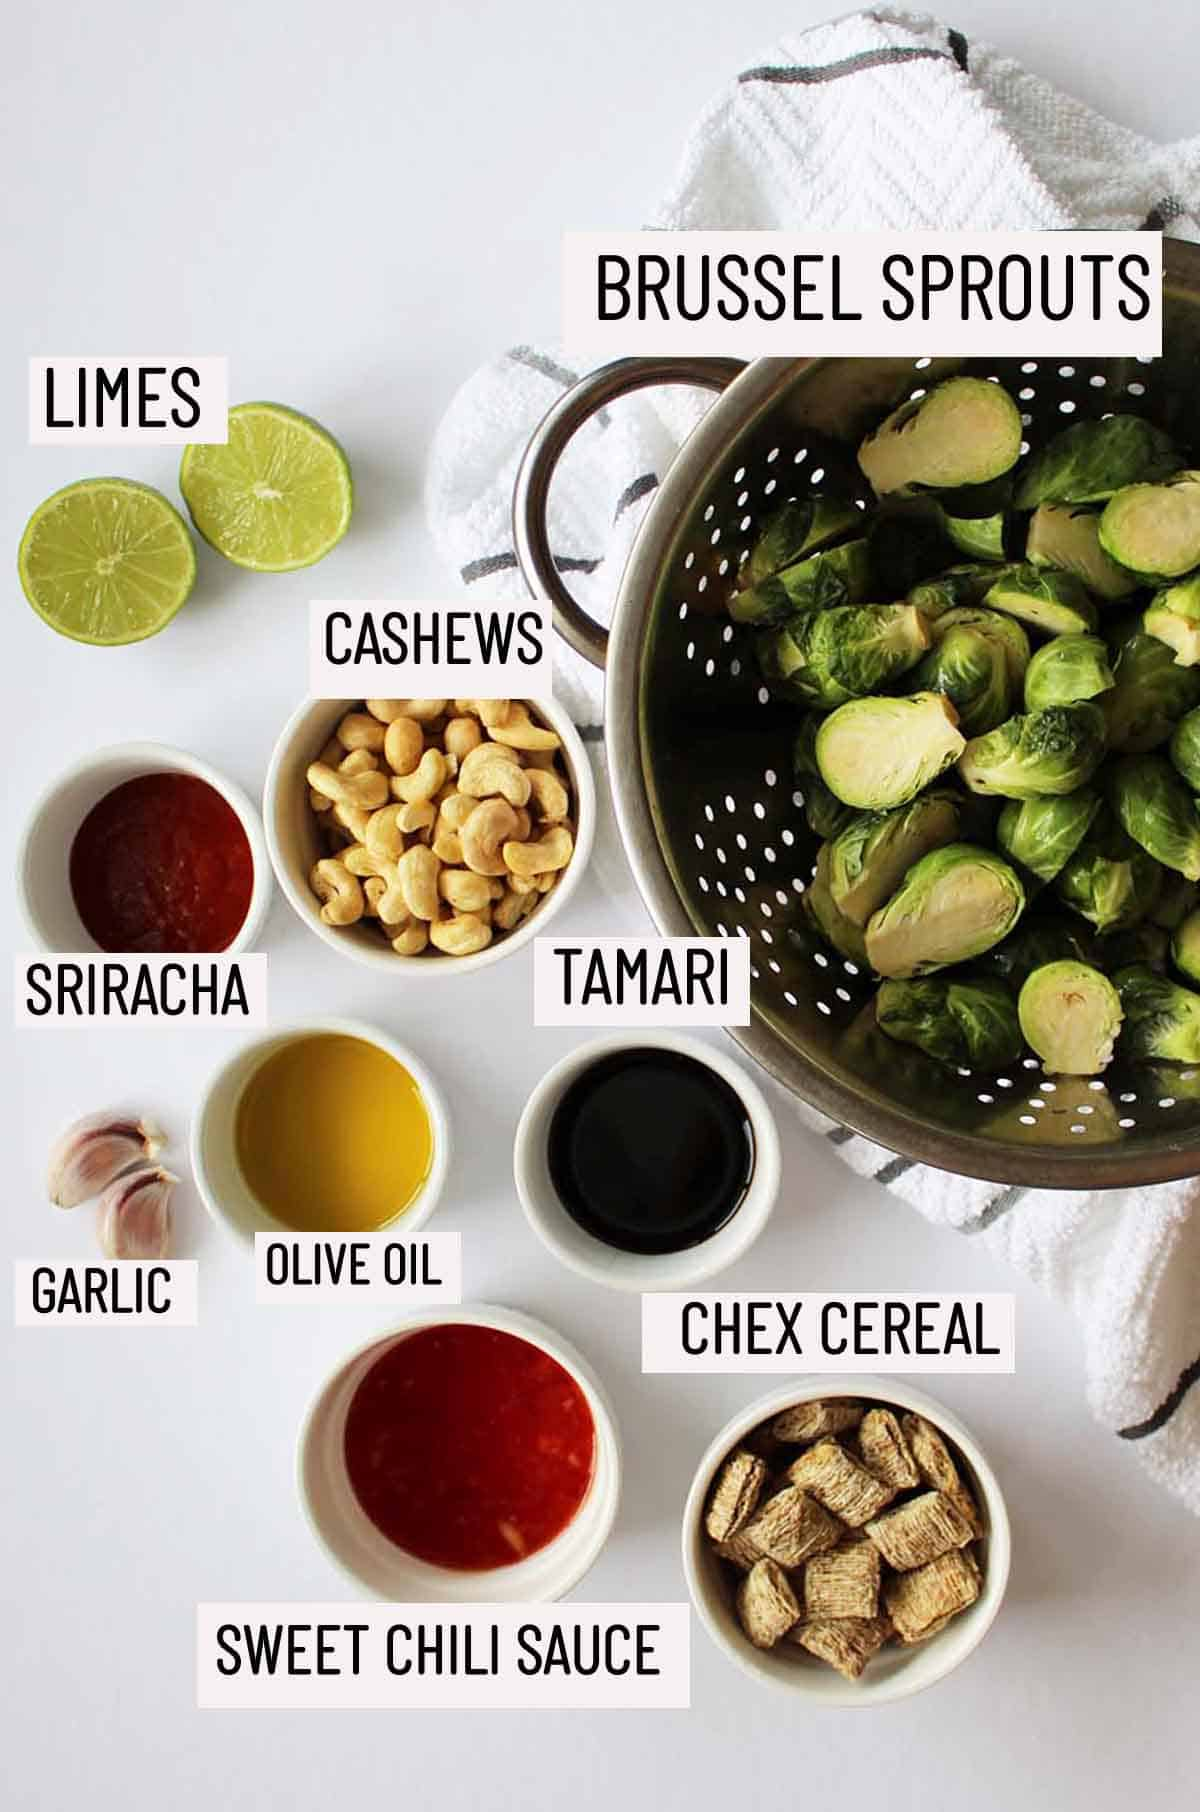 Birds eye view of portioned ingredients to make sweet and spicy brussel sprouts including brussel sprouts, lime, cashews, sriracha, garlic, olive oil, tamari, sweet chili sauce and chex cereal.